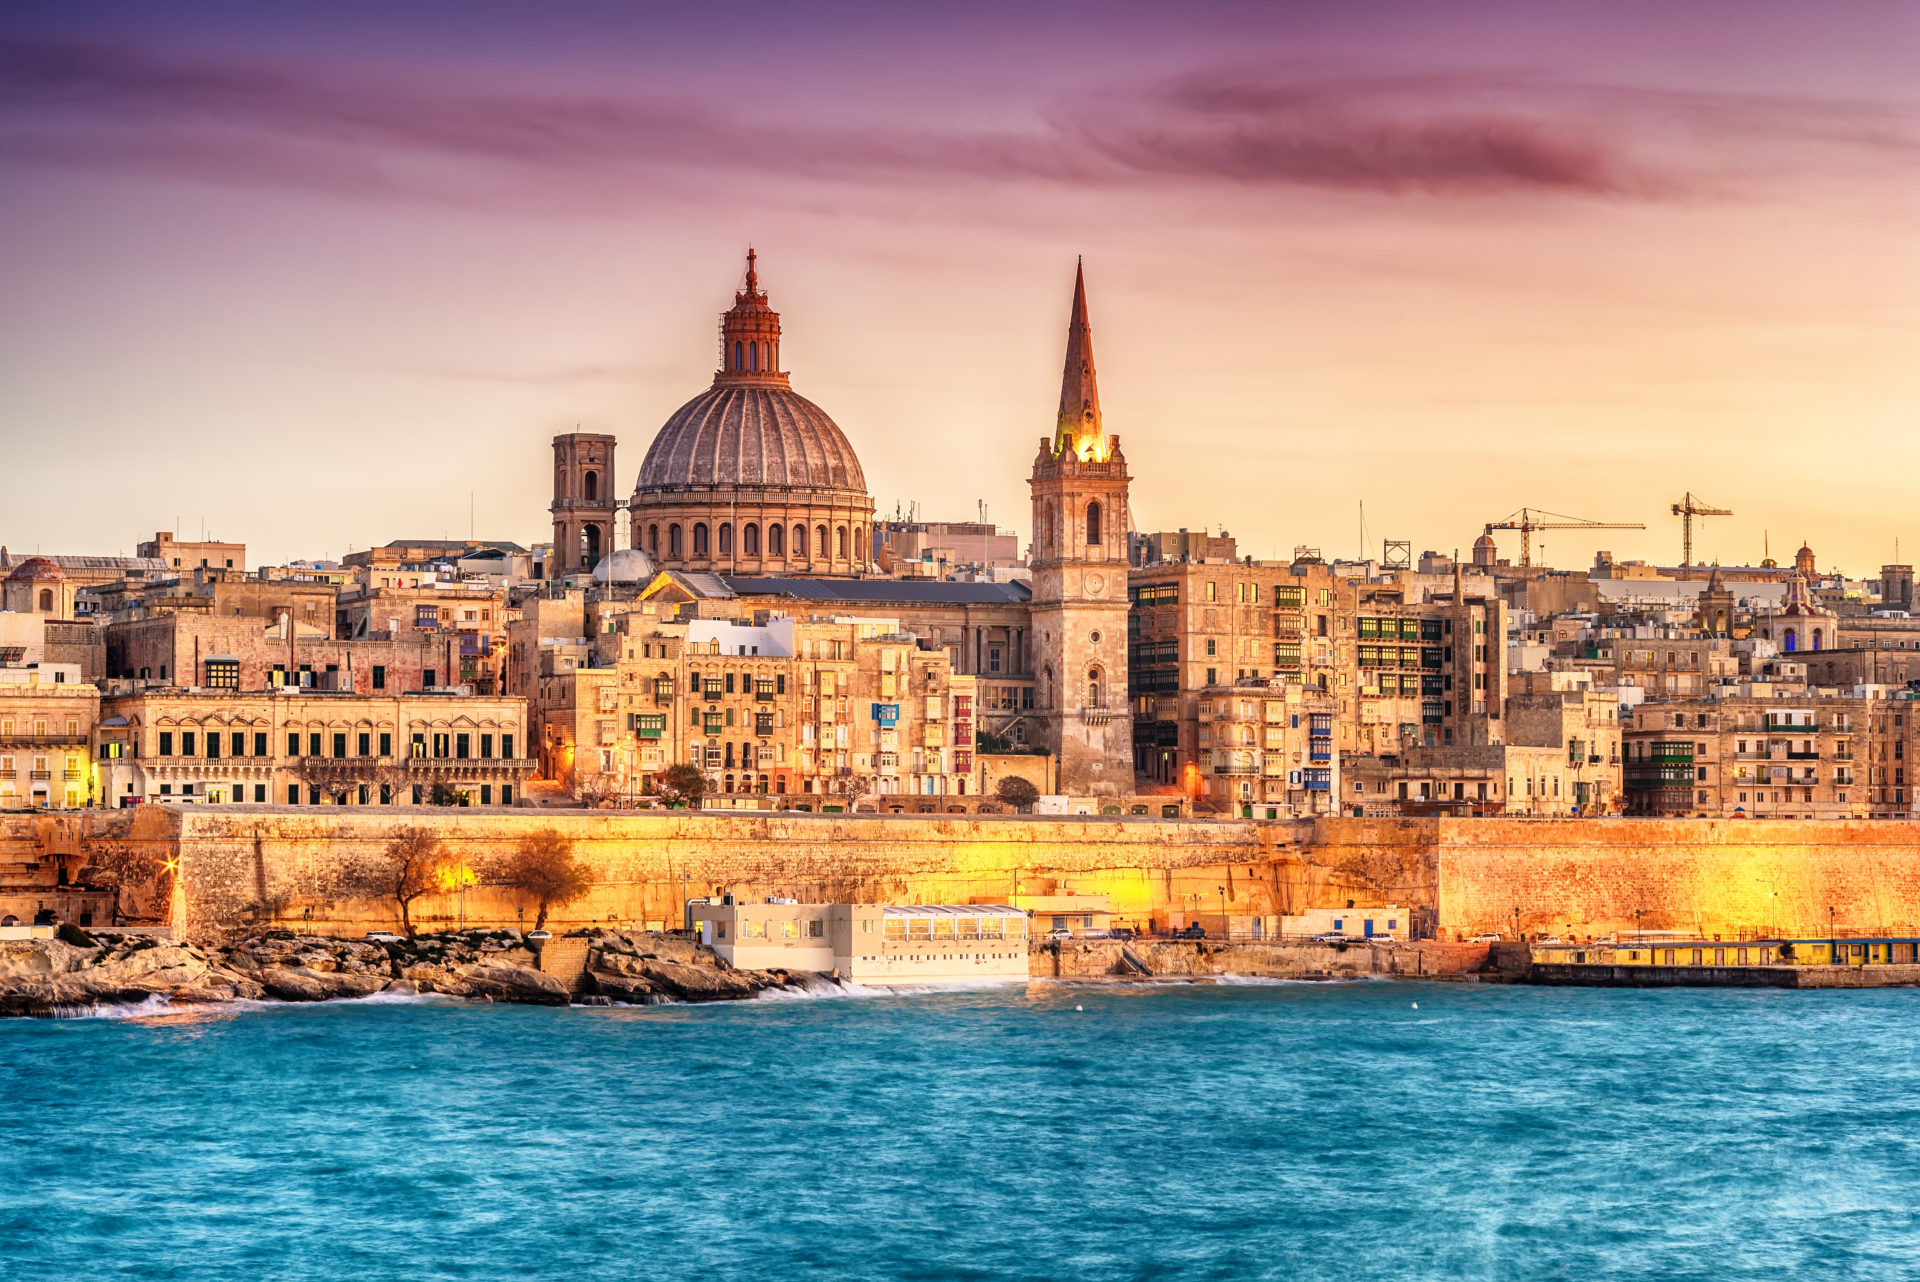 Maltese Prime Minister Fraudulently Impersonated by Bitcoin Peddlers on Instagram